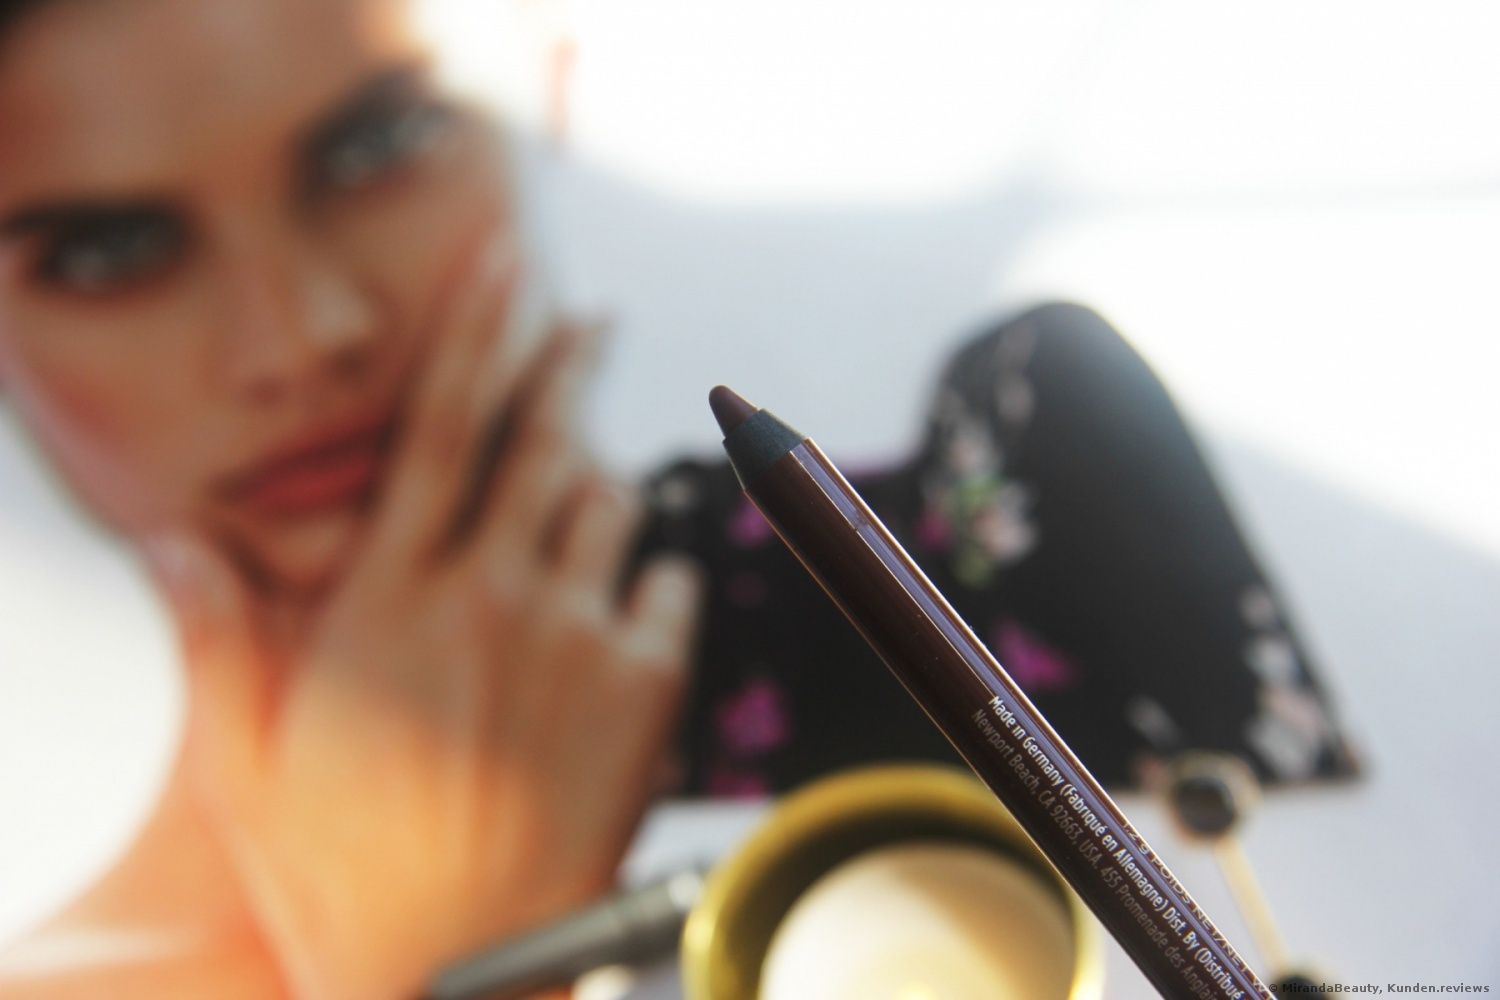 Urban Decay 24/7 Glide-On Lip Pencil Lippenkonturenstift Foto